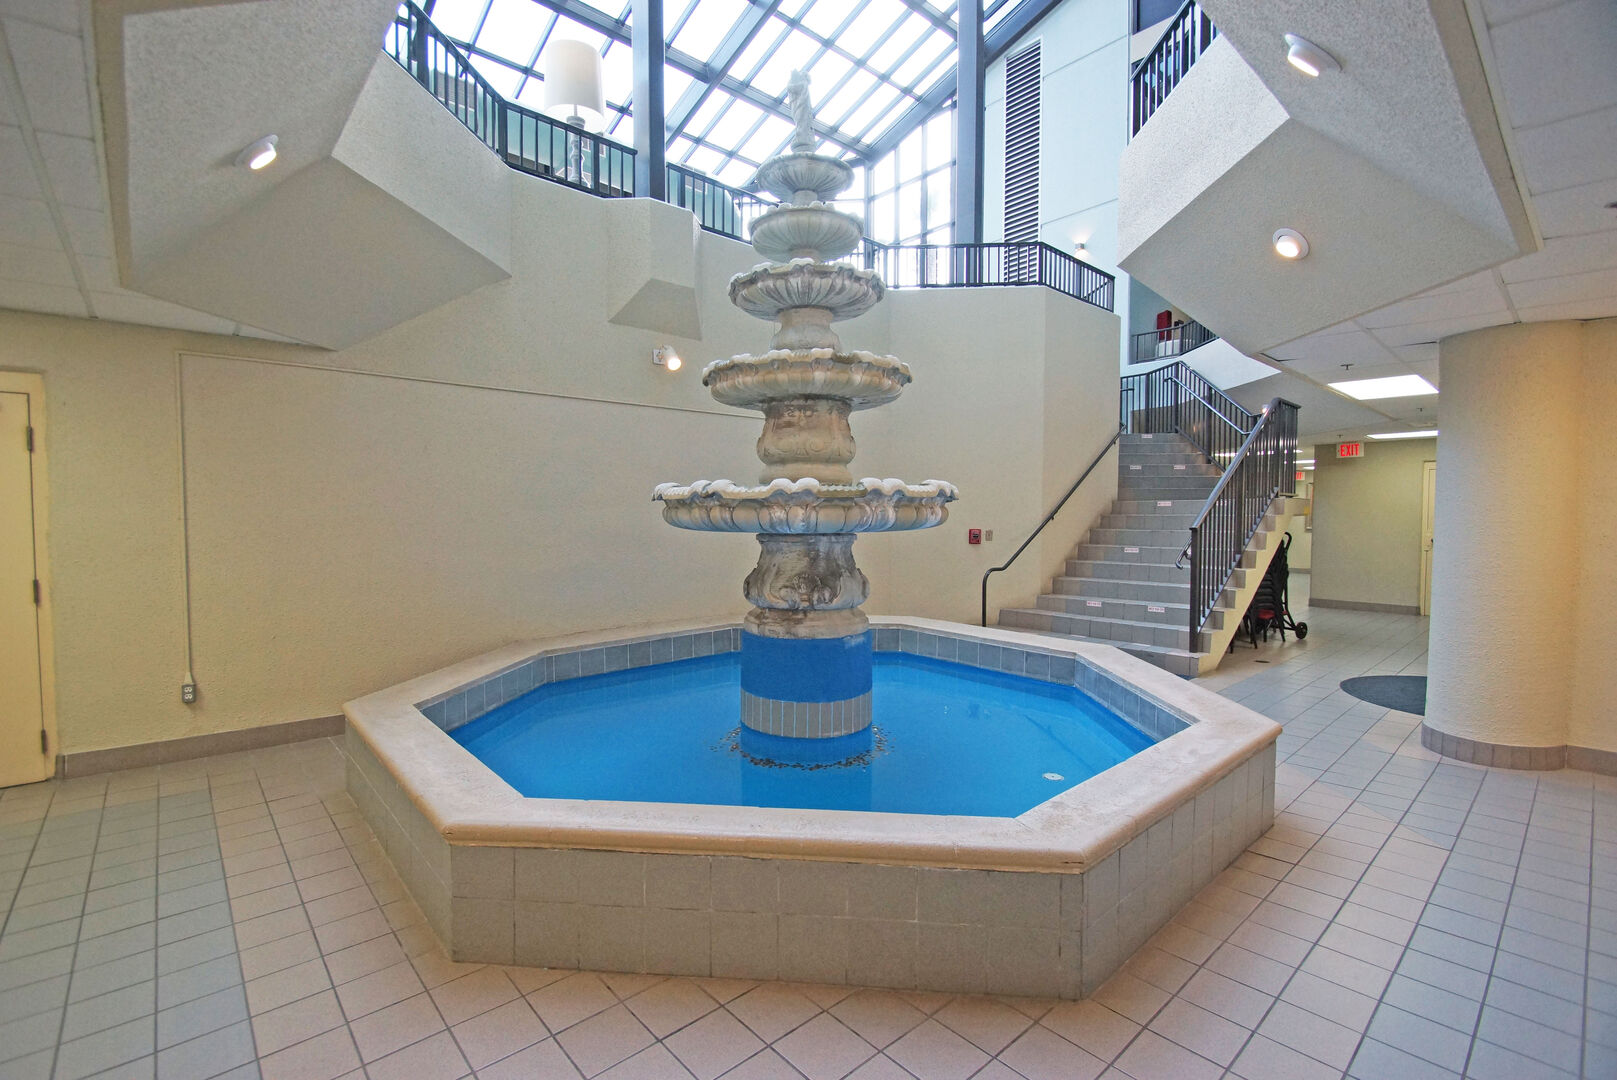 Picture of the Phoenix VI Lobby with a Fountain and the Staircase.